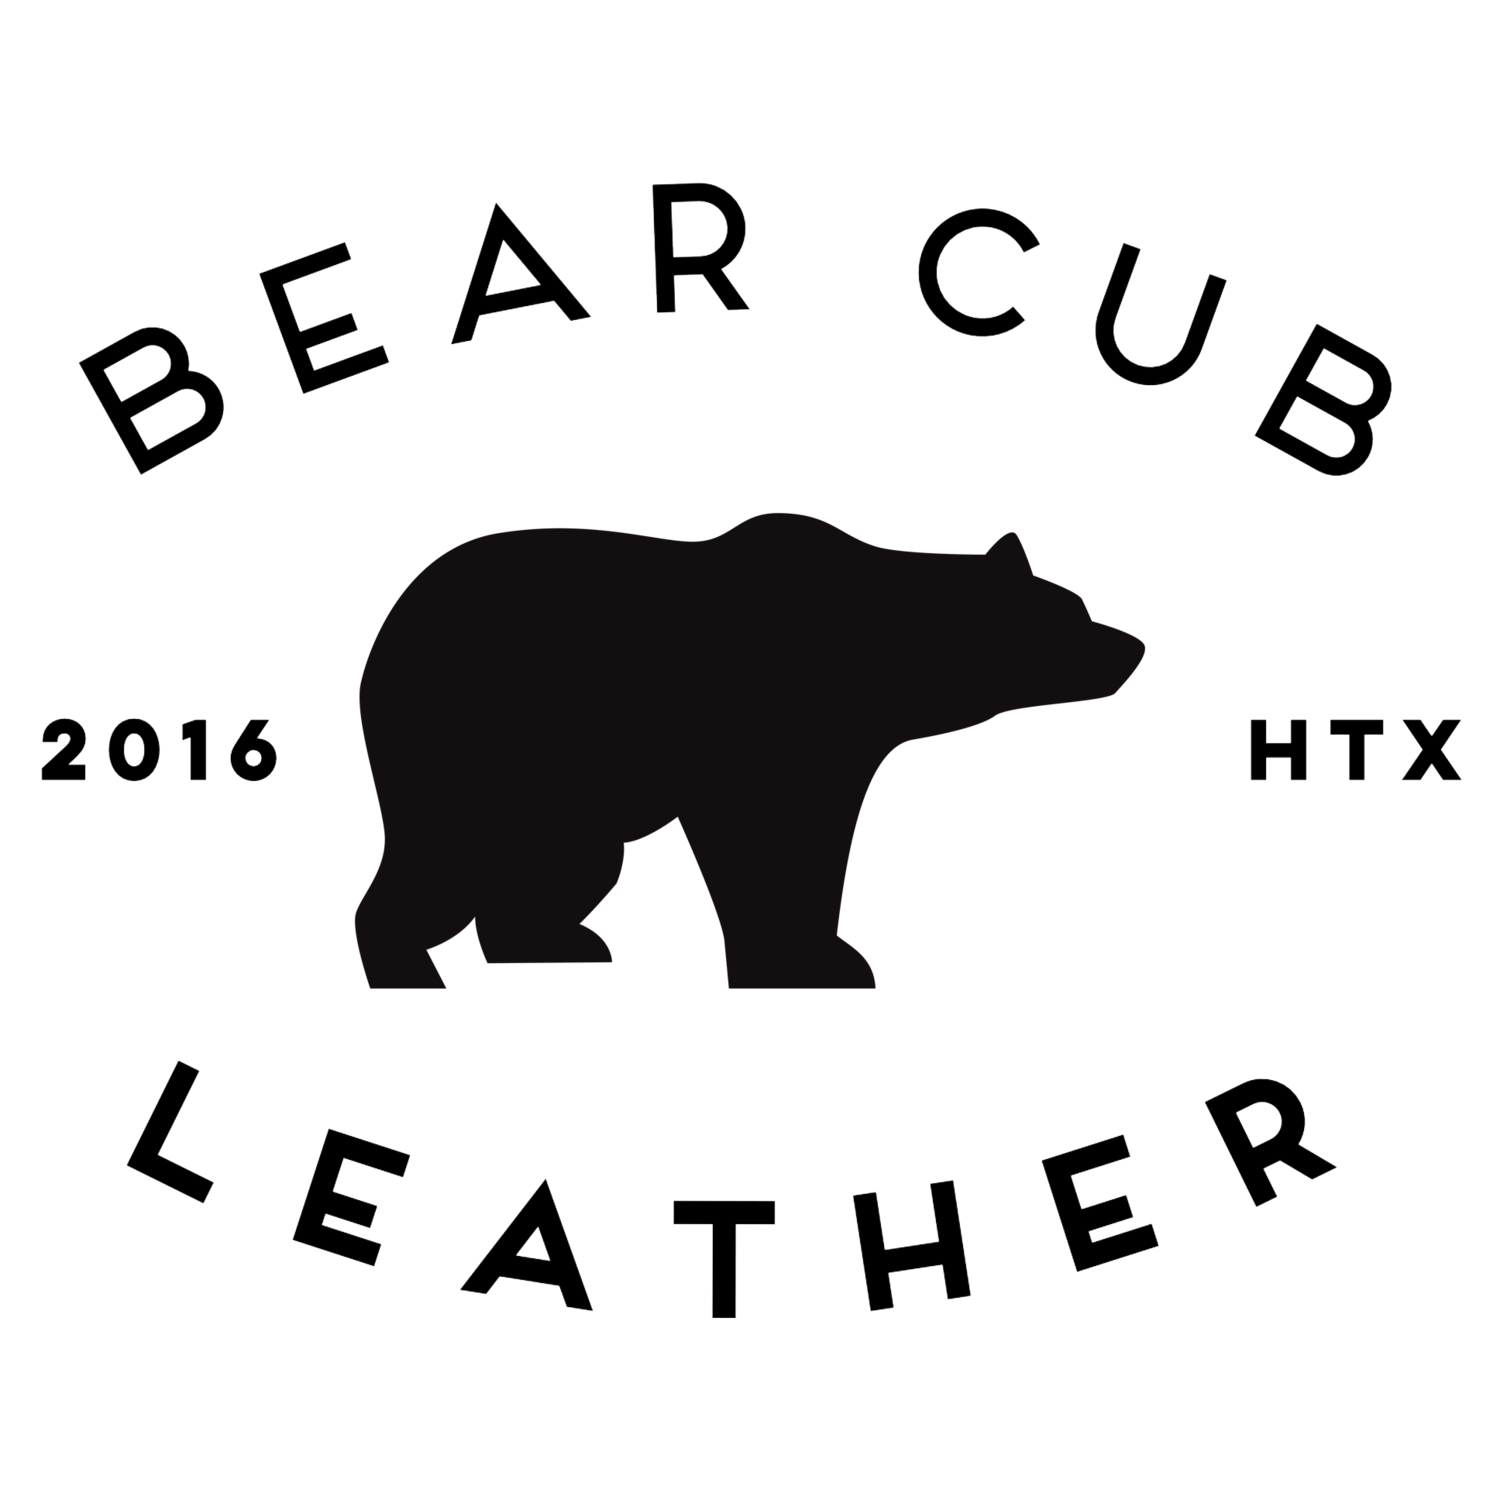 Bear Cub Leather Goods